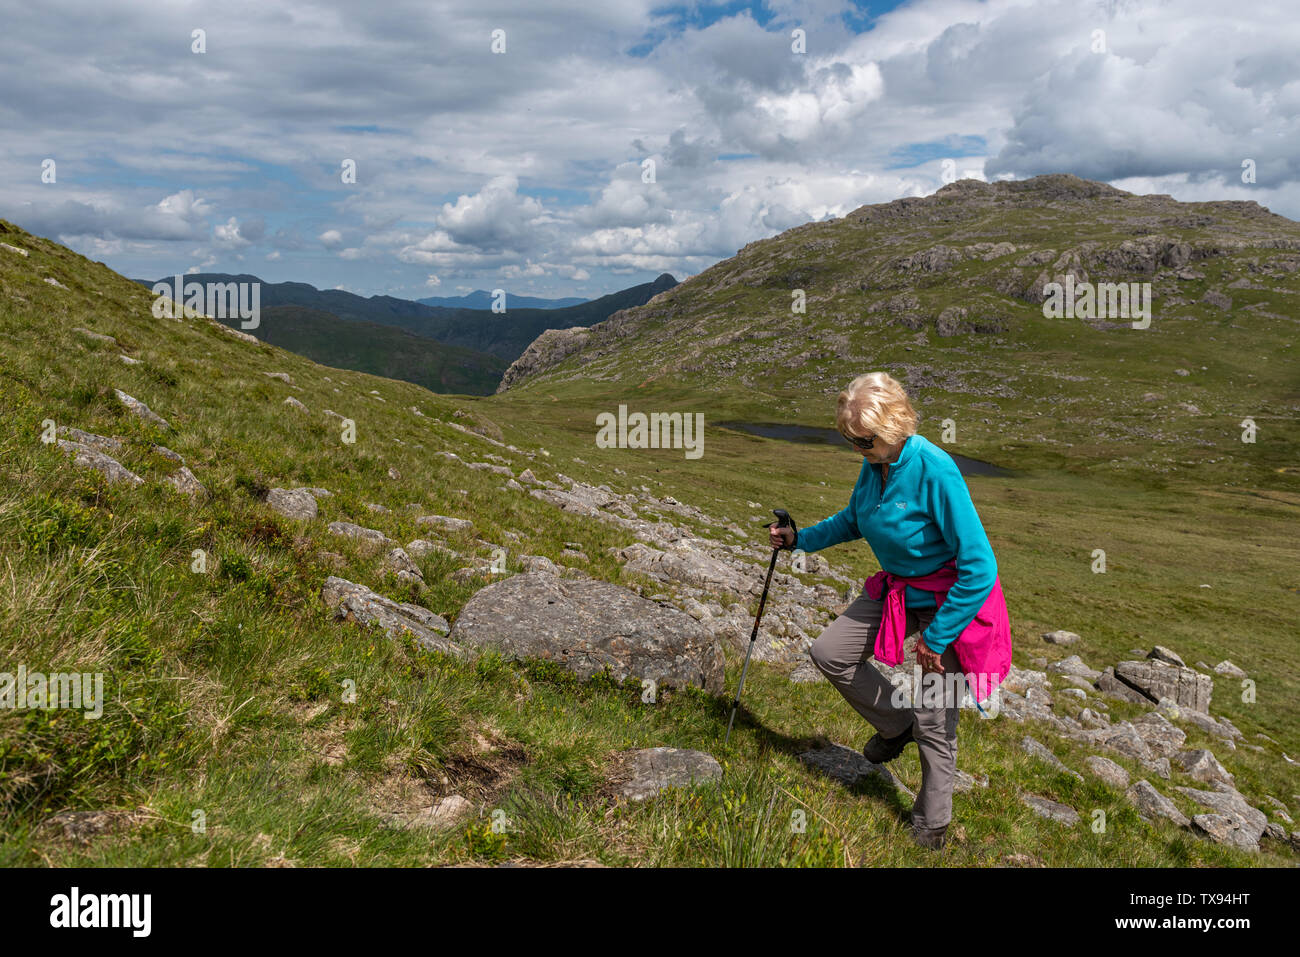 Climbing Cold Pike in South Lakes Cumbria - Stock Image